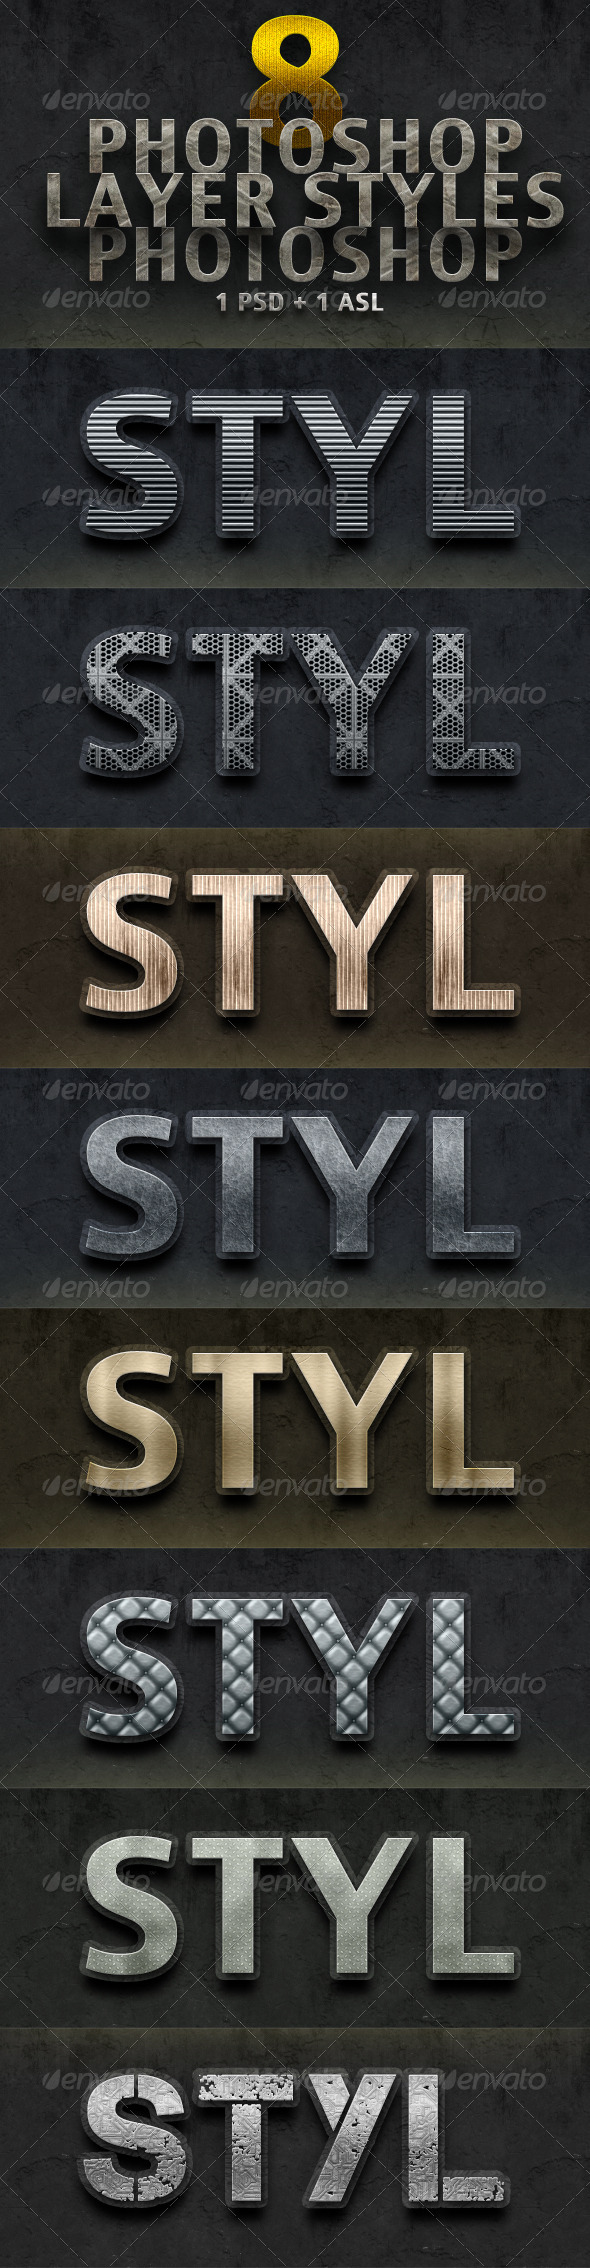 GraphicRiver 8 Photoshop Layer Styles 5072276